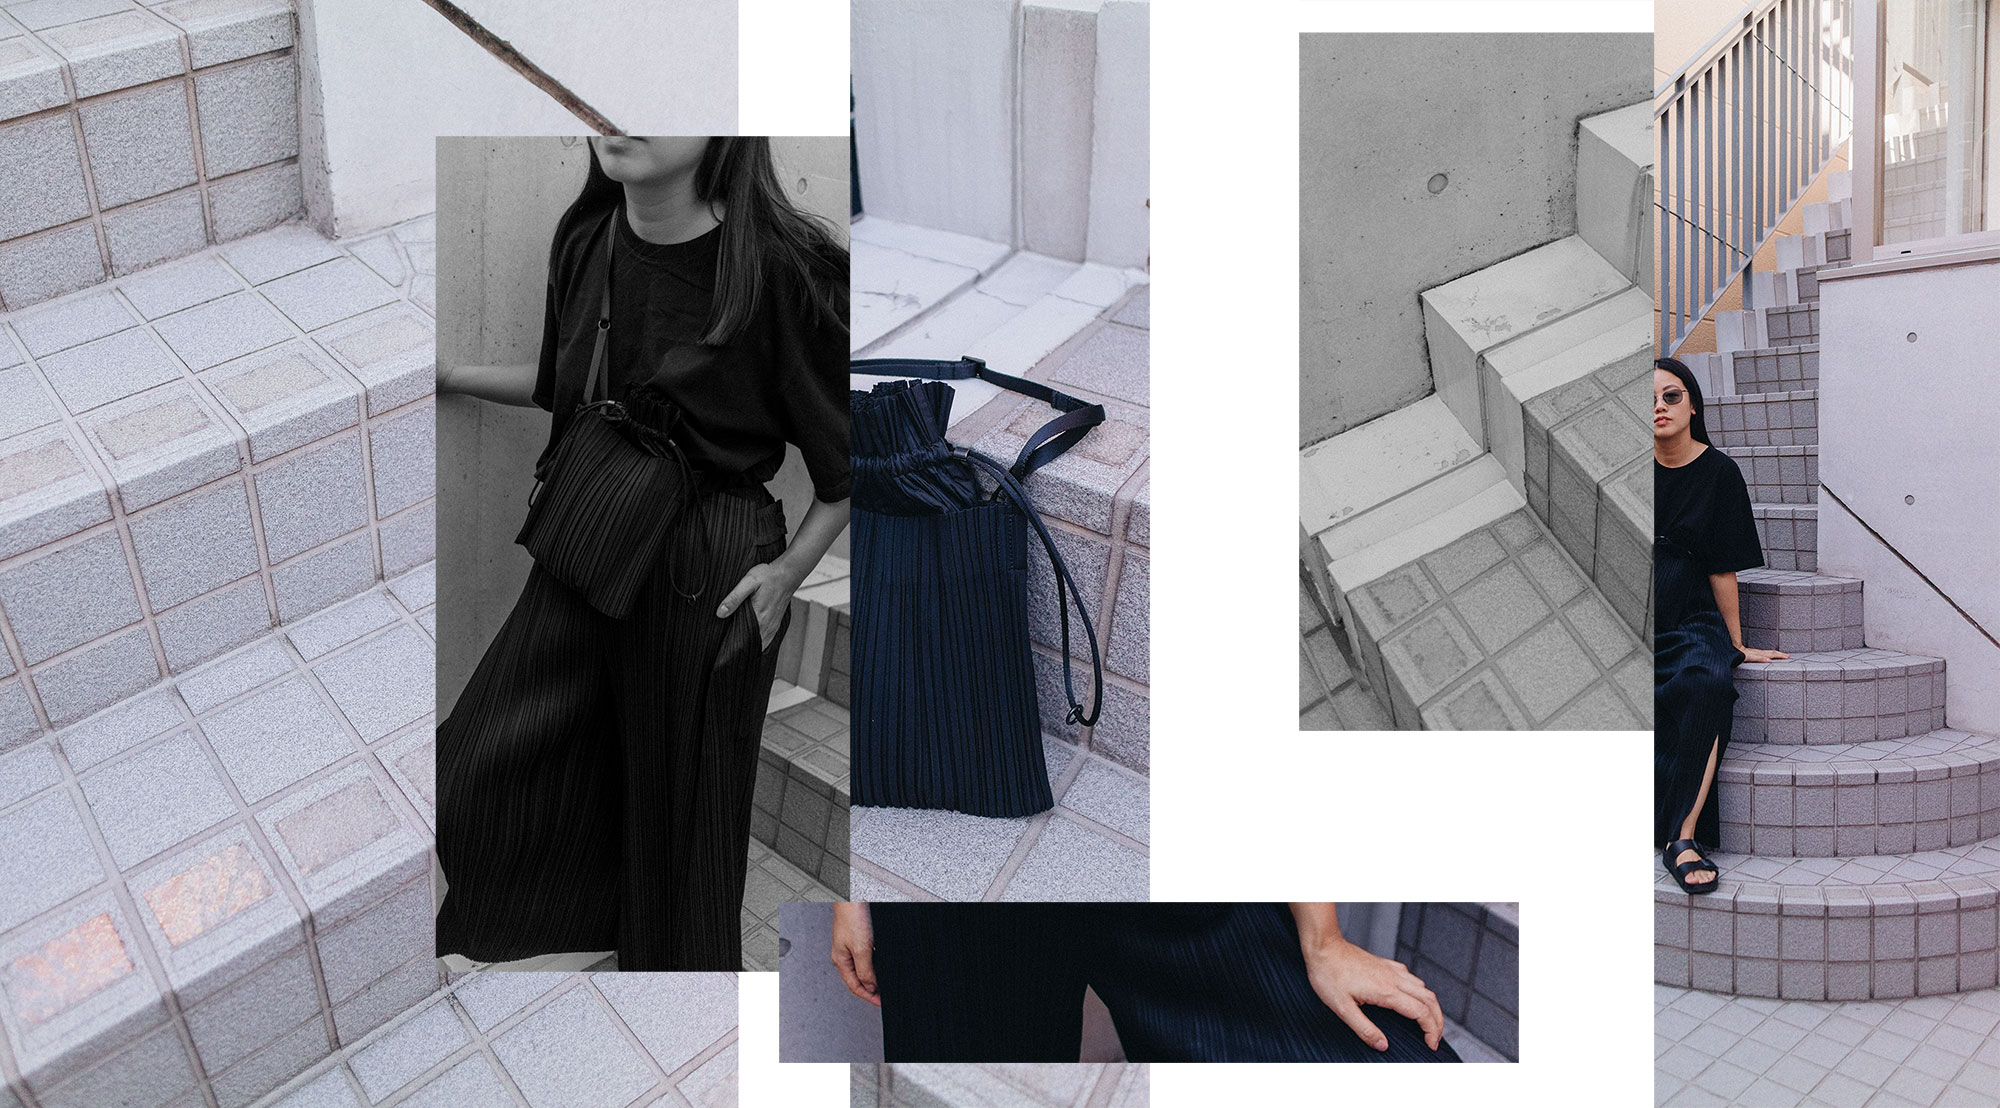 All Over Issey Miyake Pleats Please by Alice M. Huynh / iHeartAlice.com - Travel, Lifestyle, Food & Fashion Blog